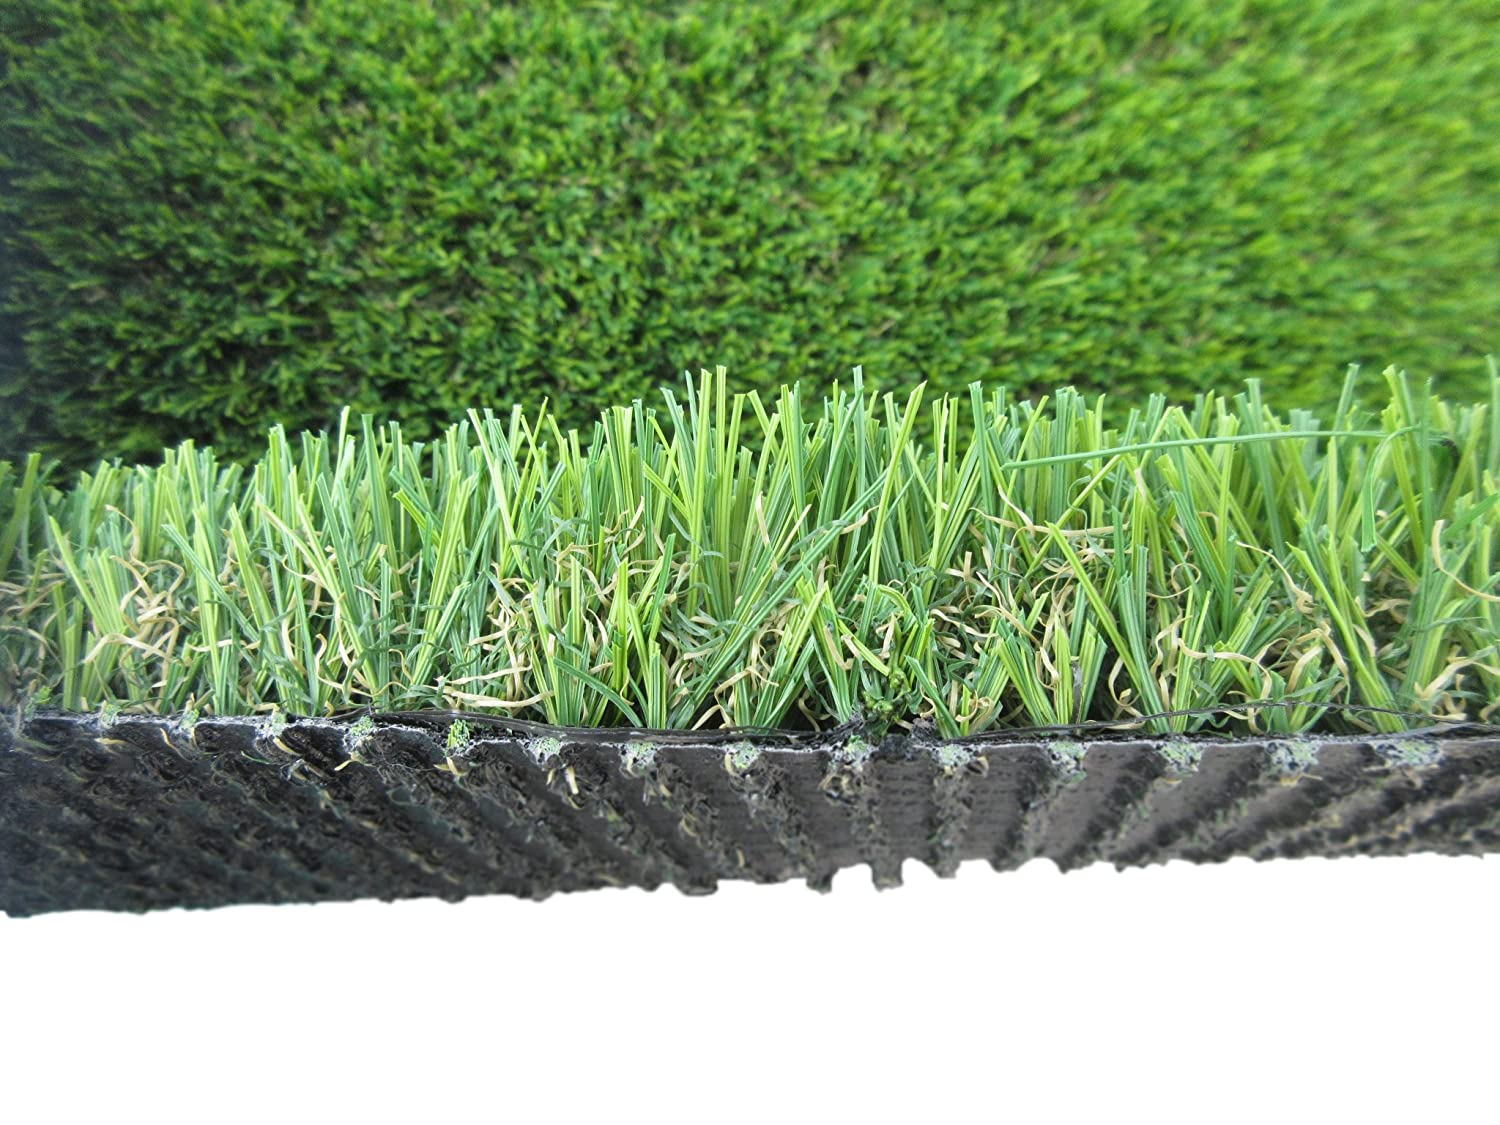 PZG Commerical Artificial Grass Patch w  Drainage Holes & Rubber Backing   Extra-Heavy & Durable Turf   Lead-Free Fake Grass for Dogs or Outdoor Decor   Total Wt. 83 oz & Face Wt. 55 oz   12' x 10'